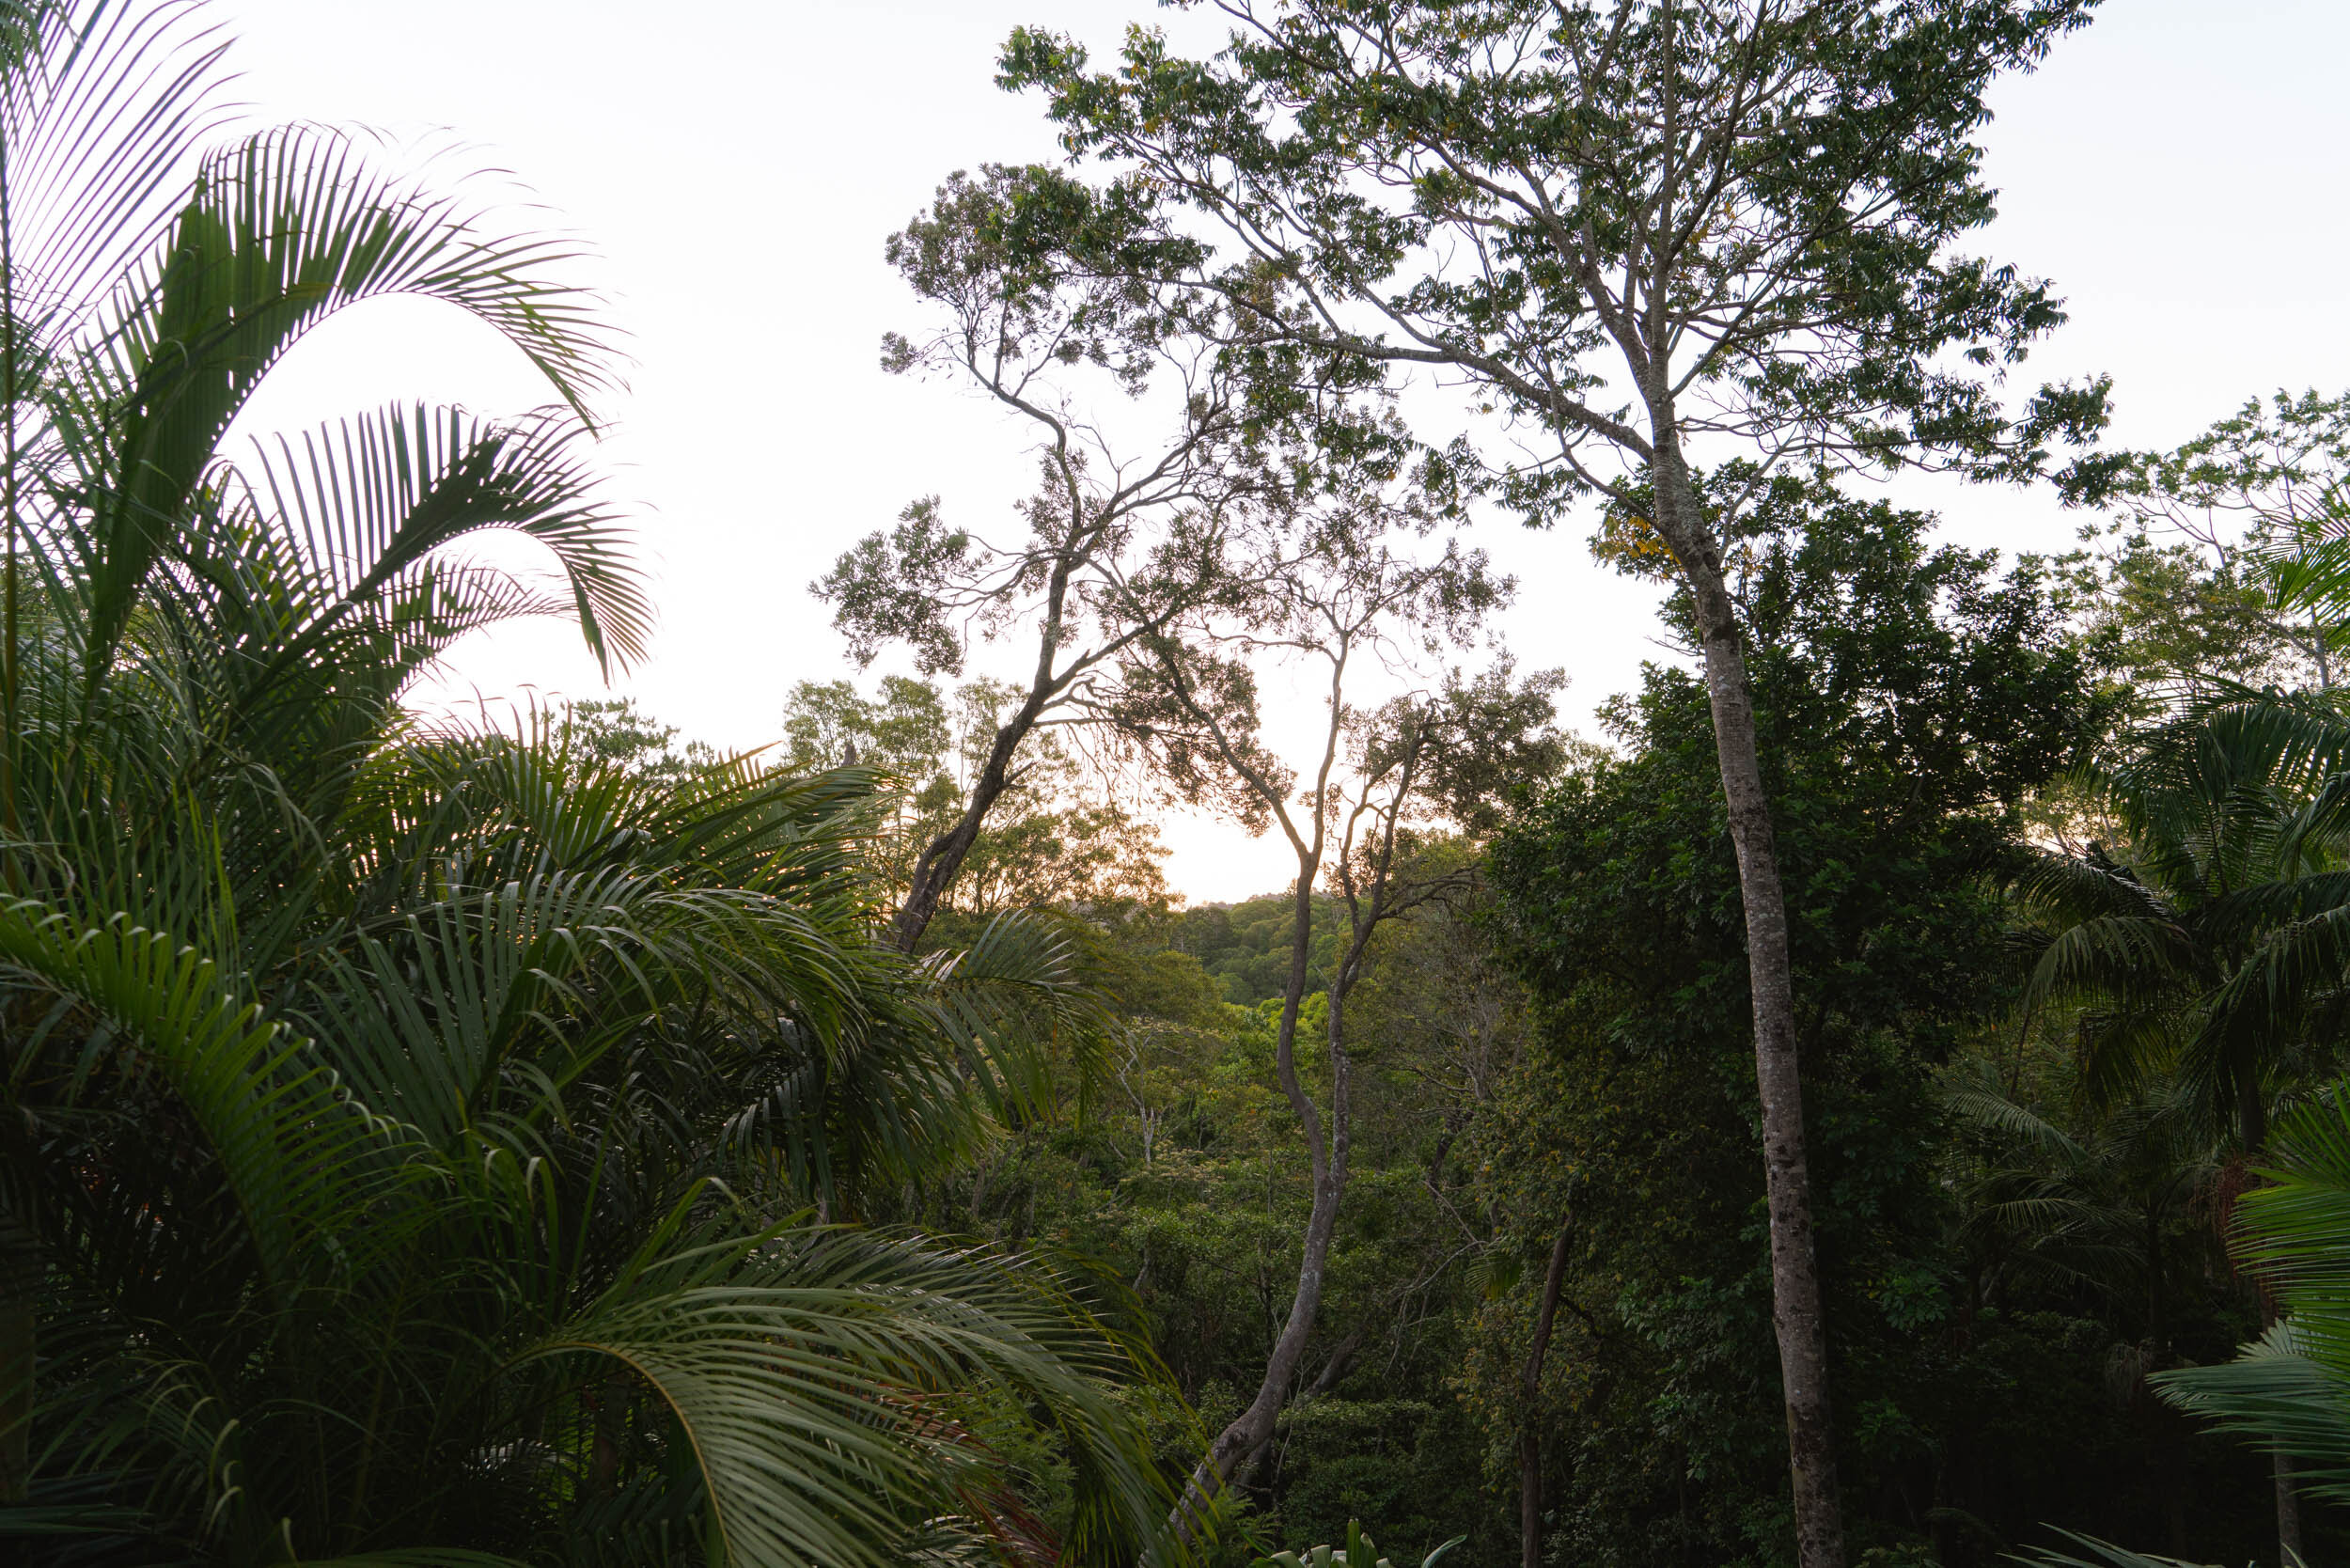 View from the back deck overlooking the rainforest.